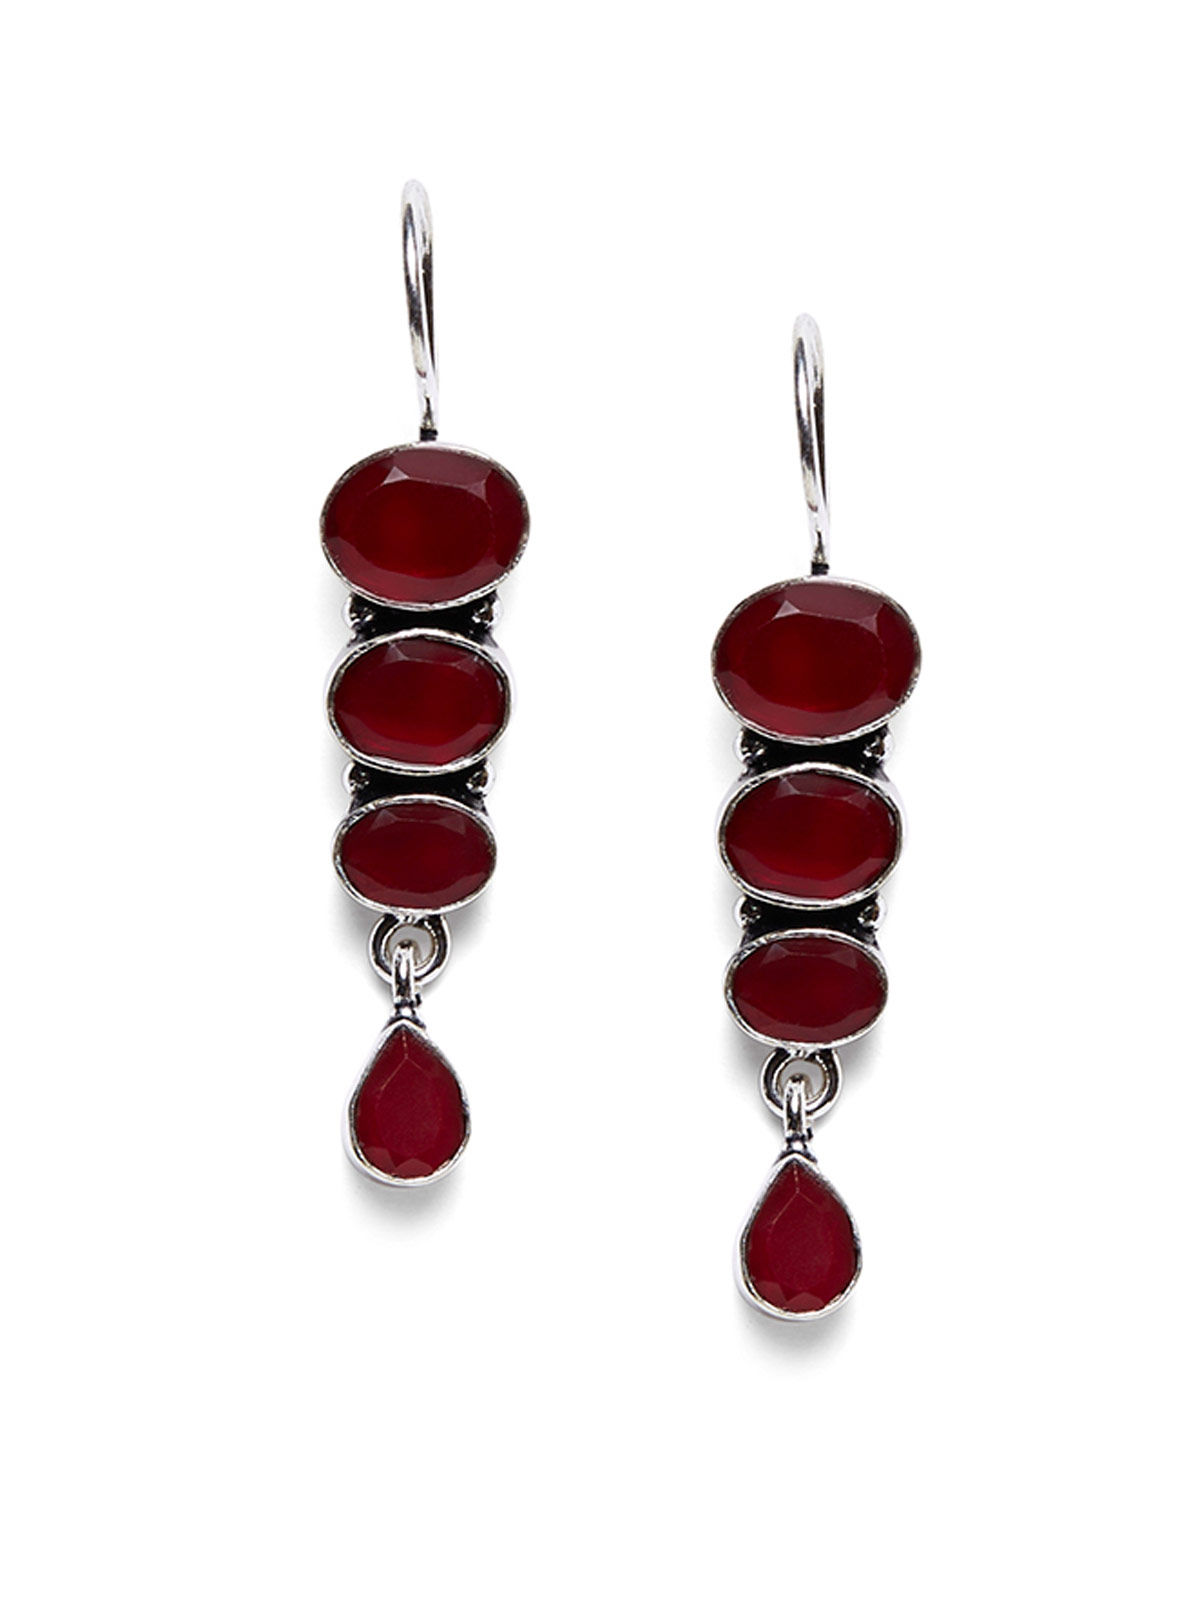 Imli Street maroon color brass earrings set